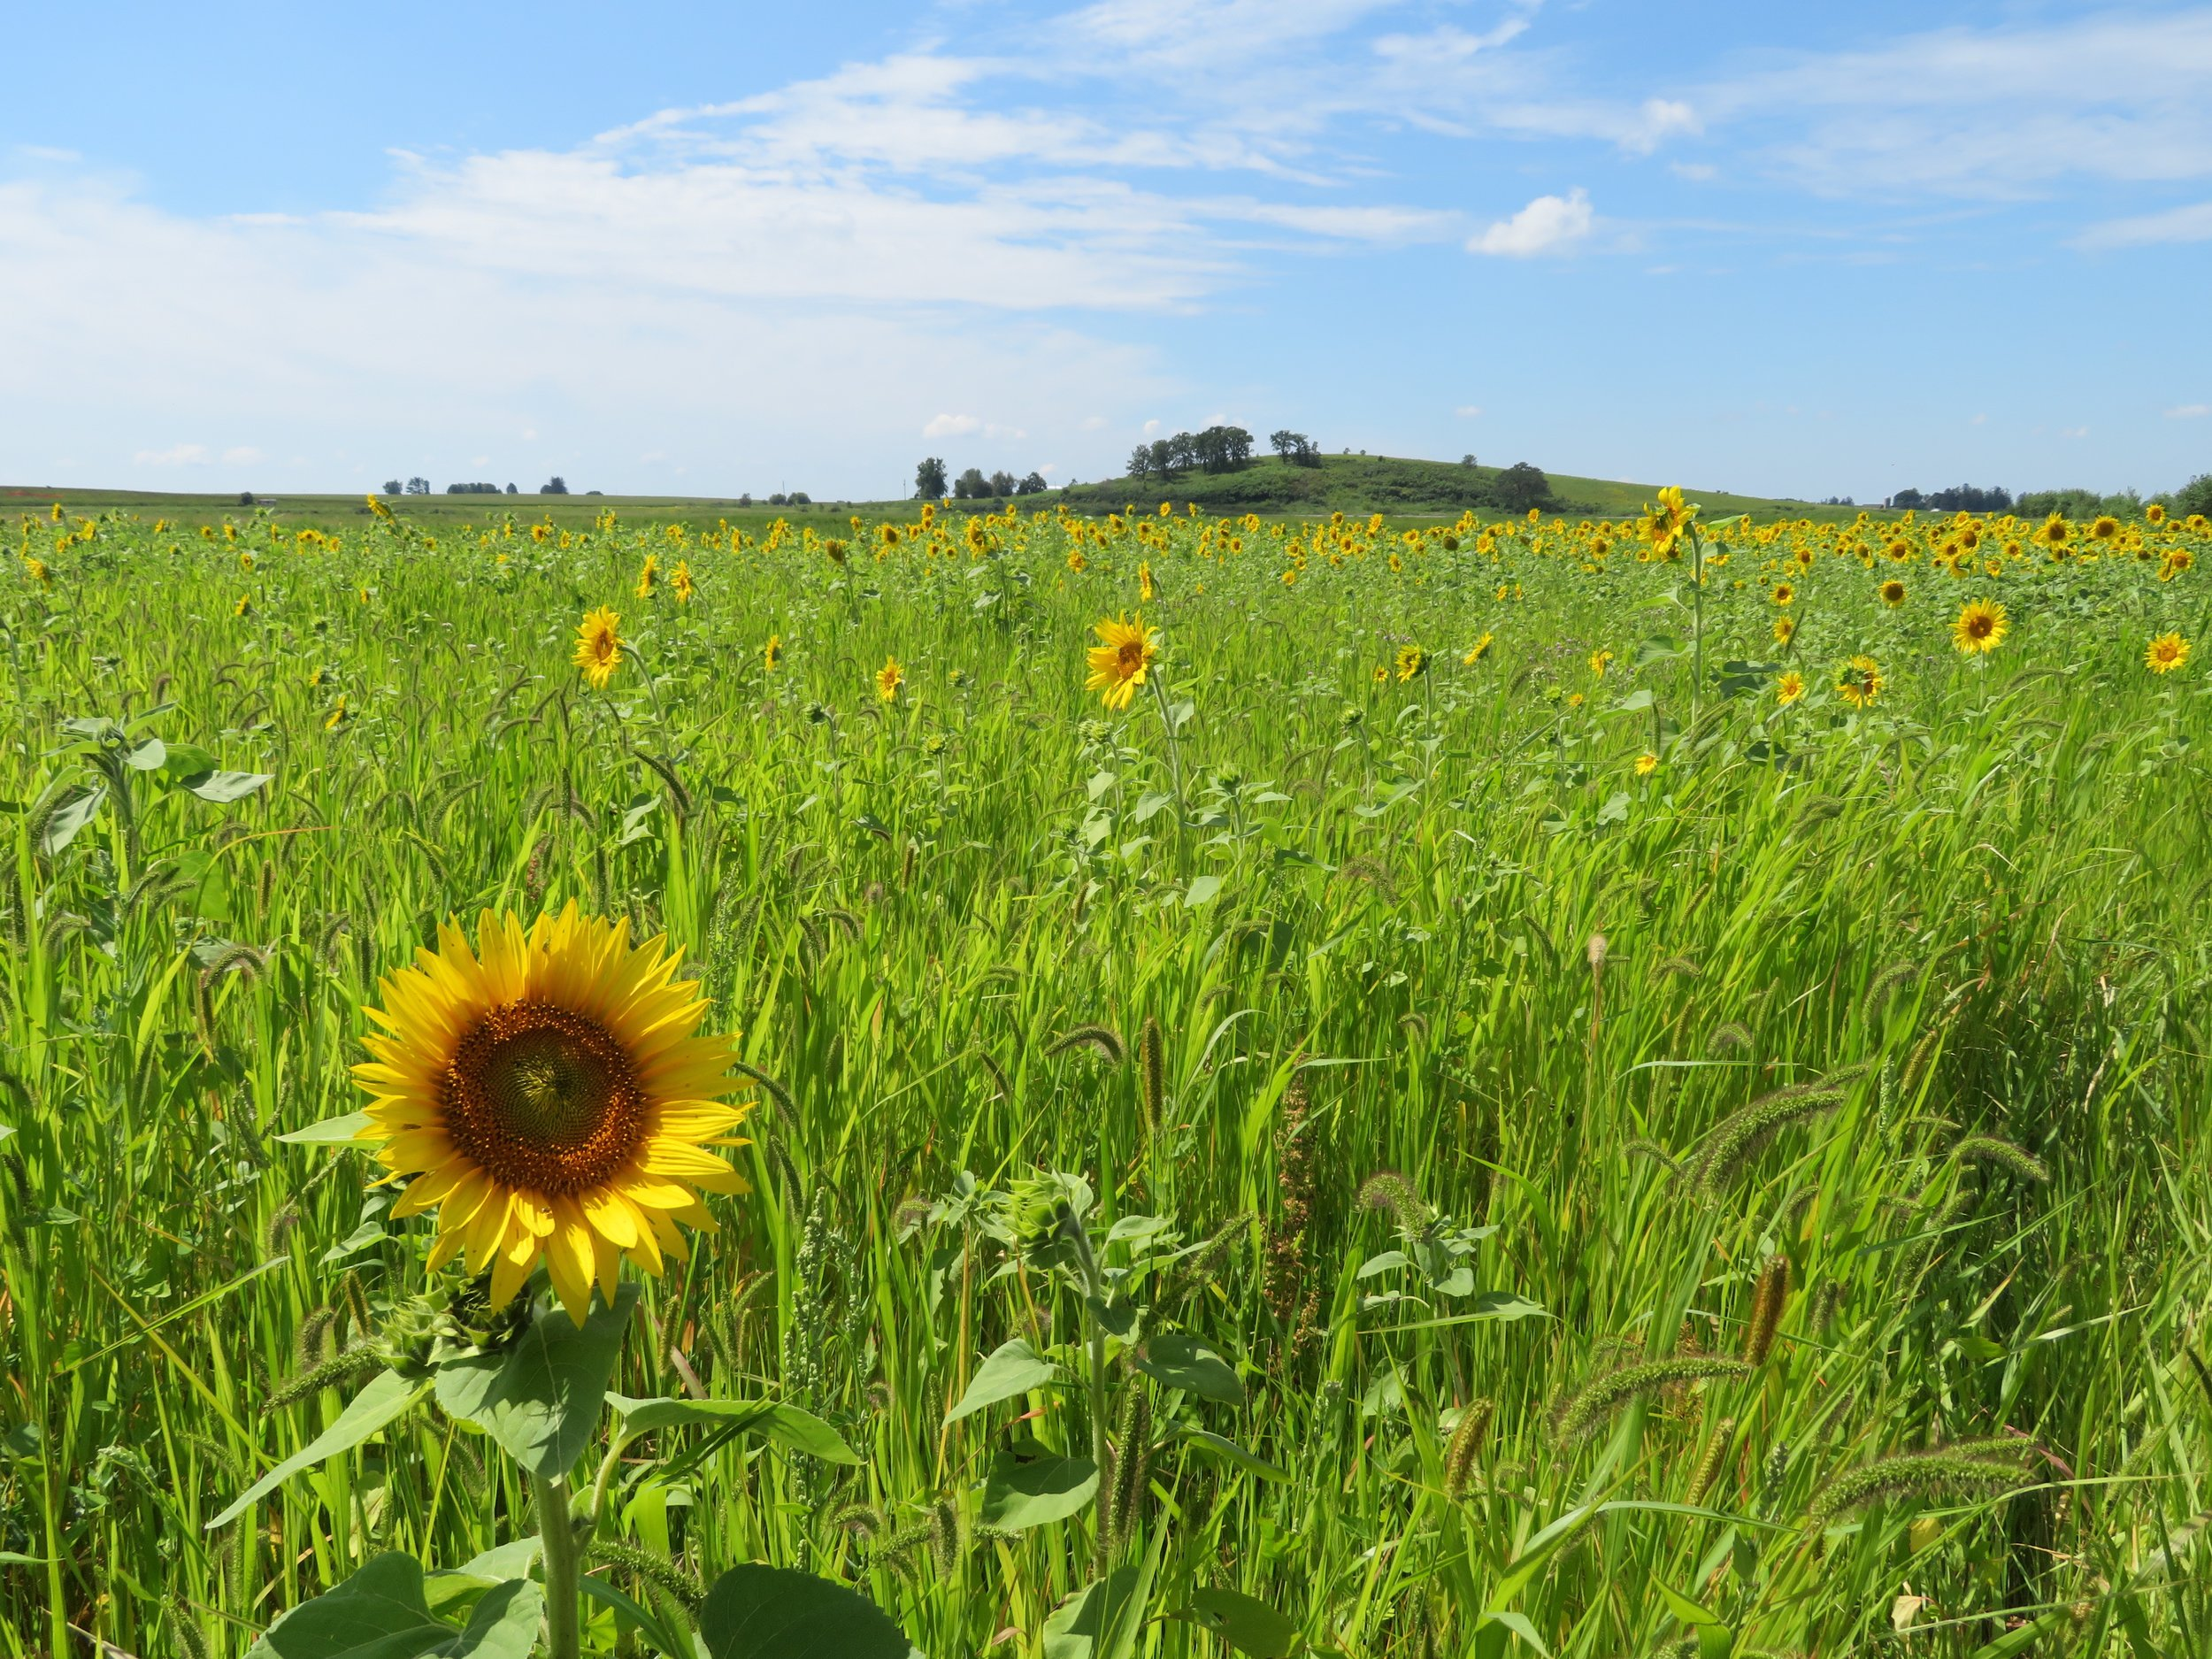 Sunflowers galore at the Goose Pond Sanctuary food plot. Photo by Maddie Dumas